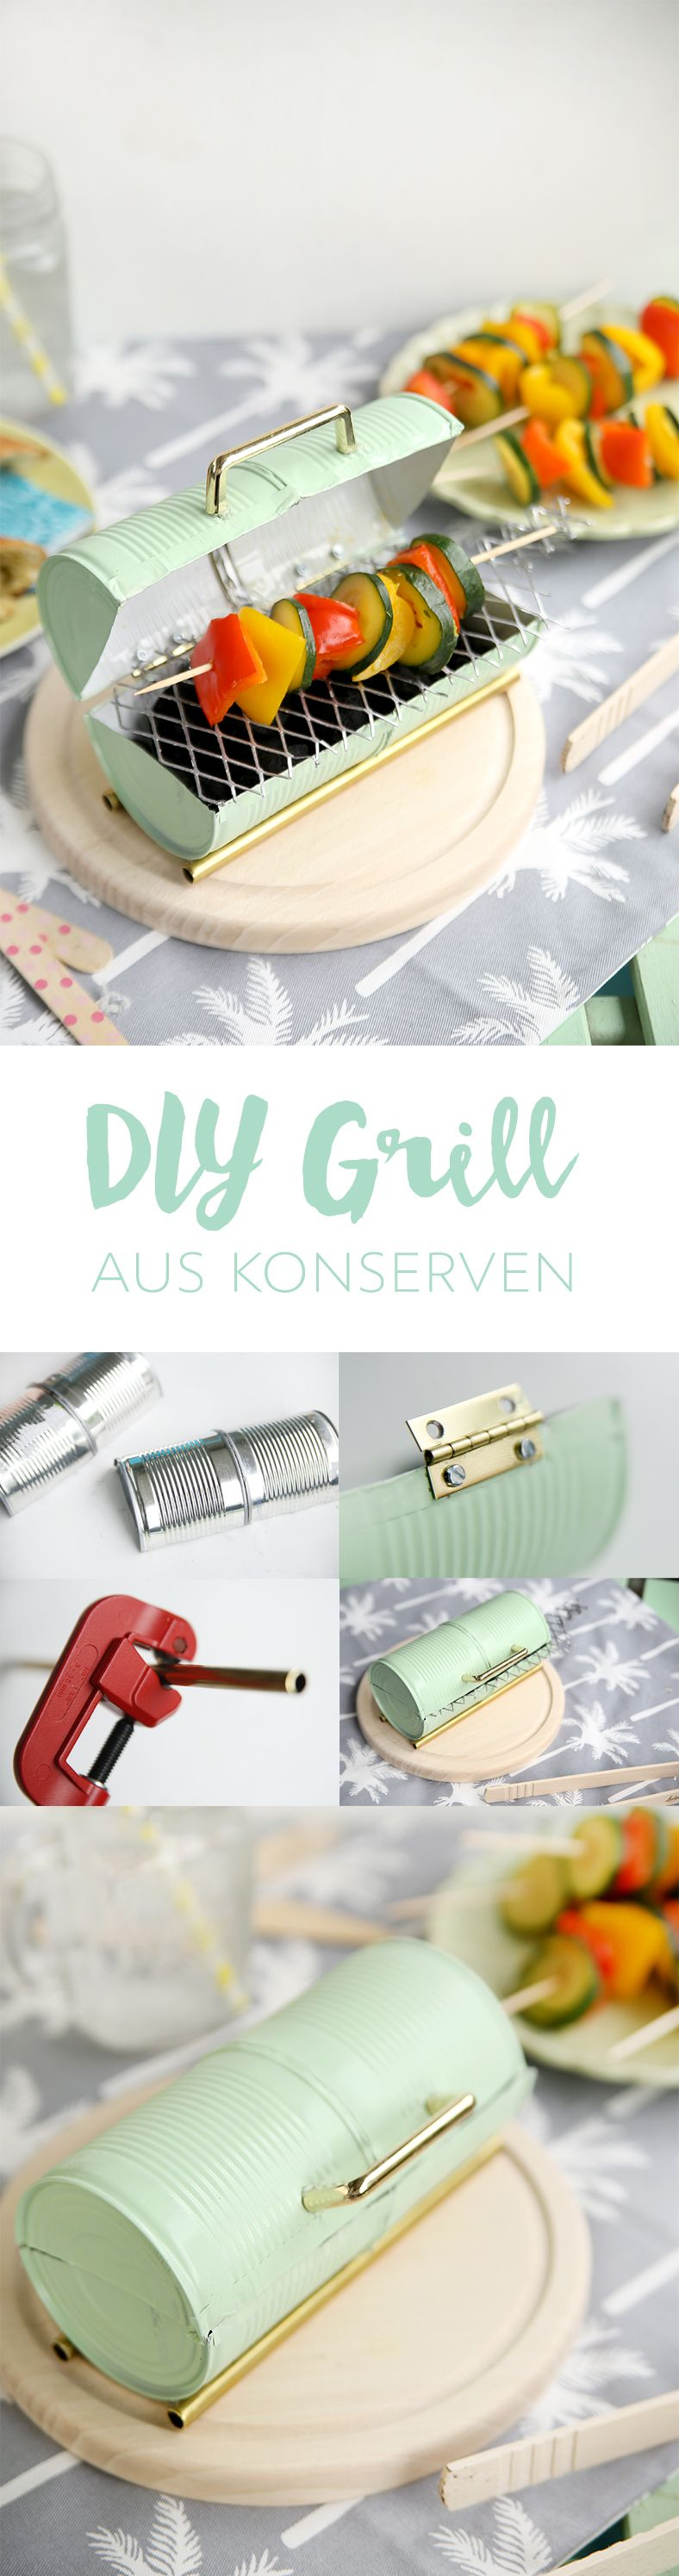 Photo of DIY homemade mini-grill